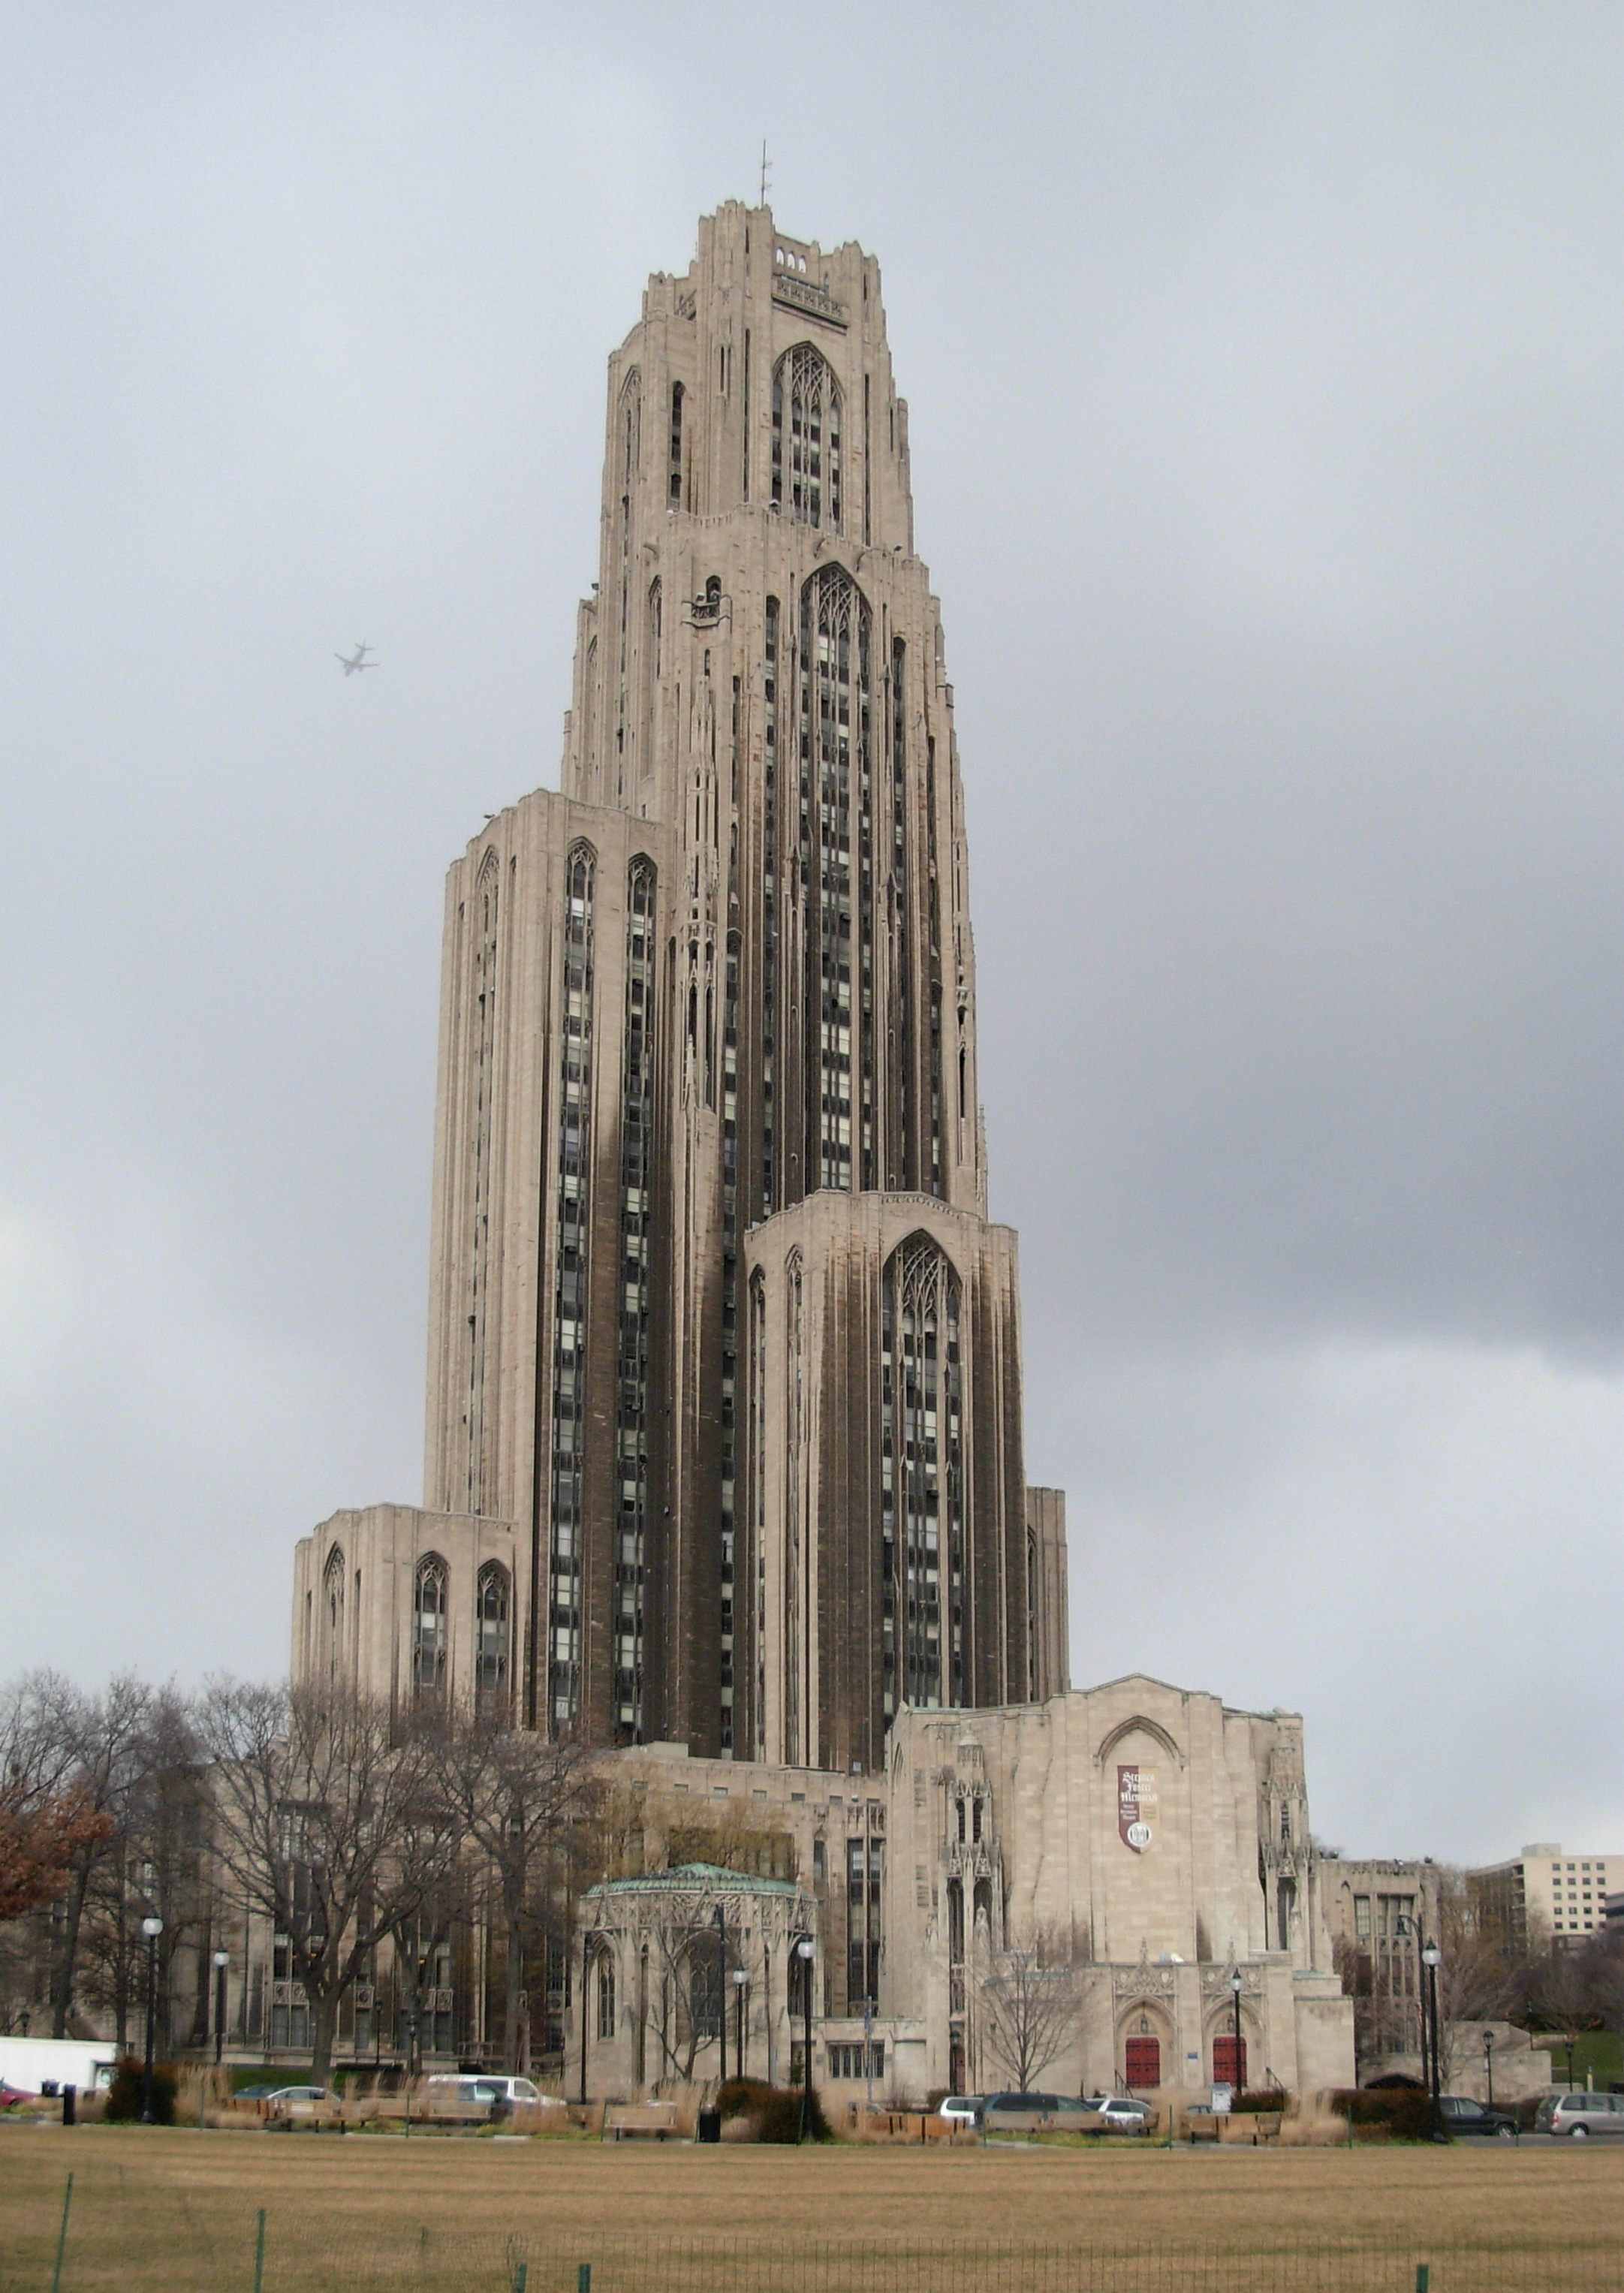 File:Cathedral of Learning 02.jpg - Wikimedia Commons: https://commons.wikimedia.org/wiki/file:cathedral_of_learning_02.jpg